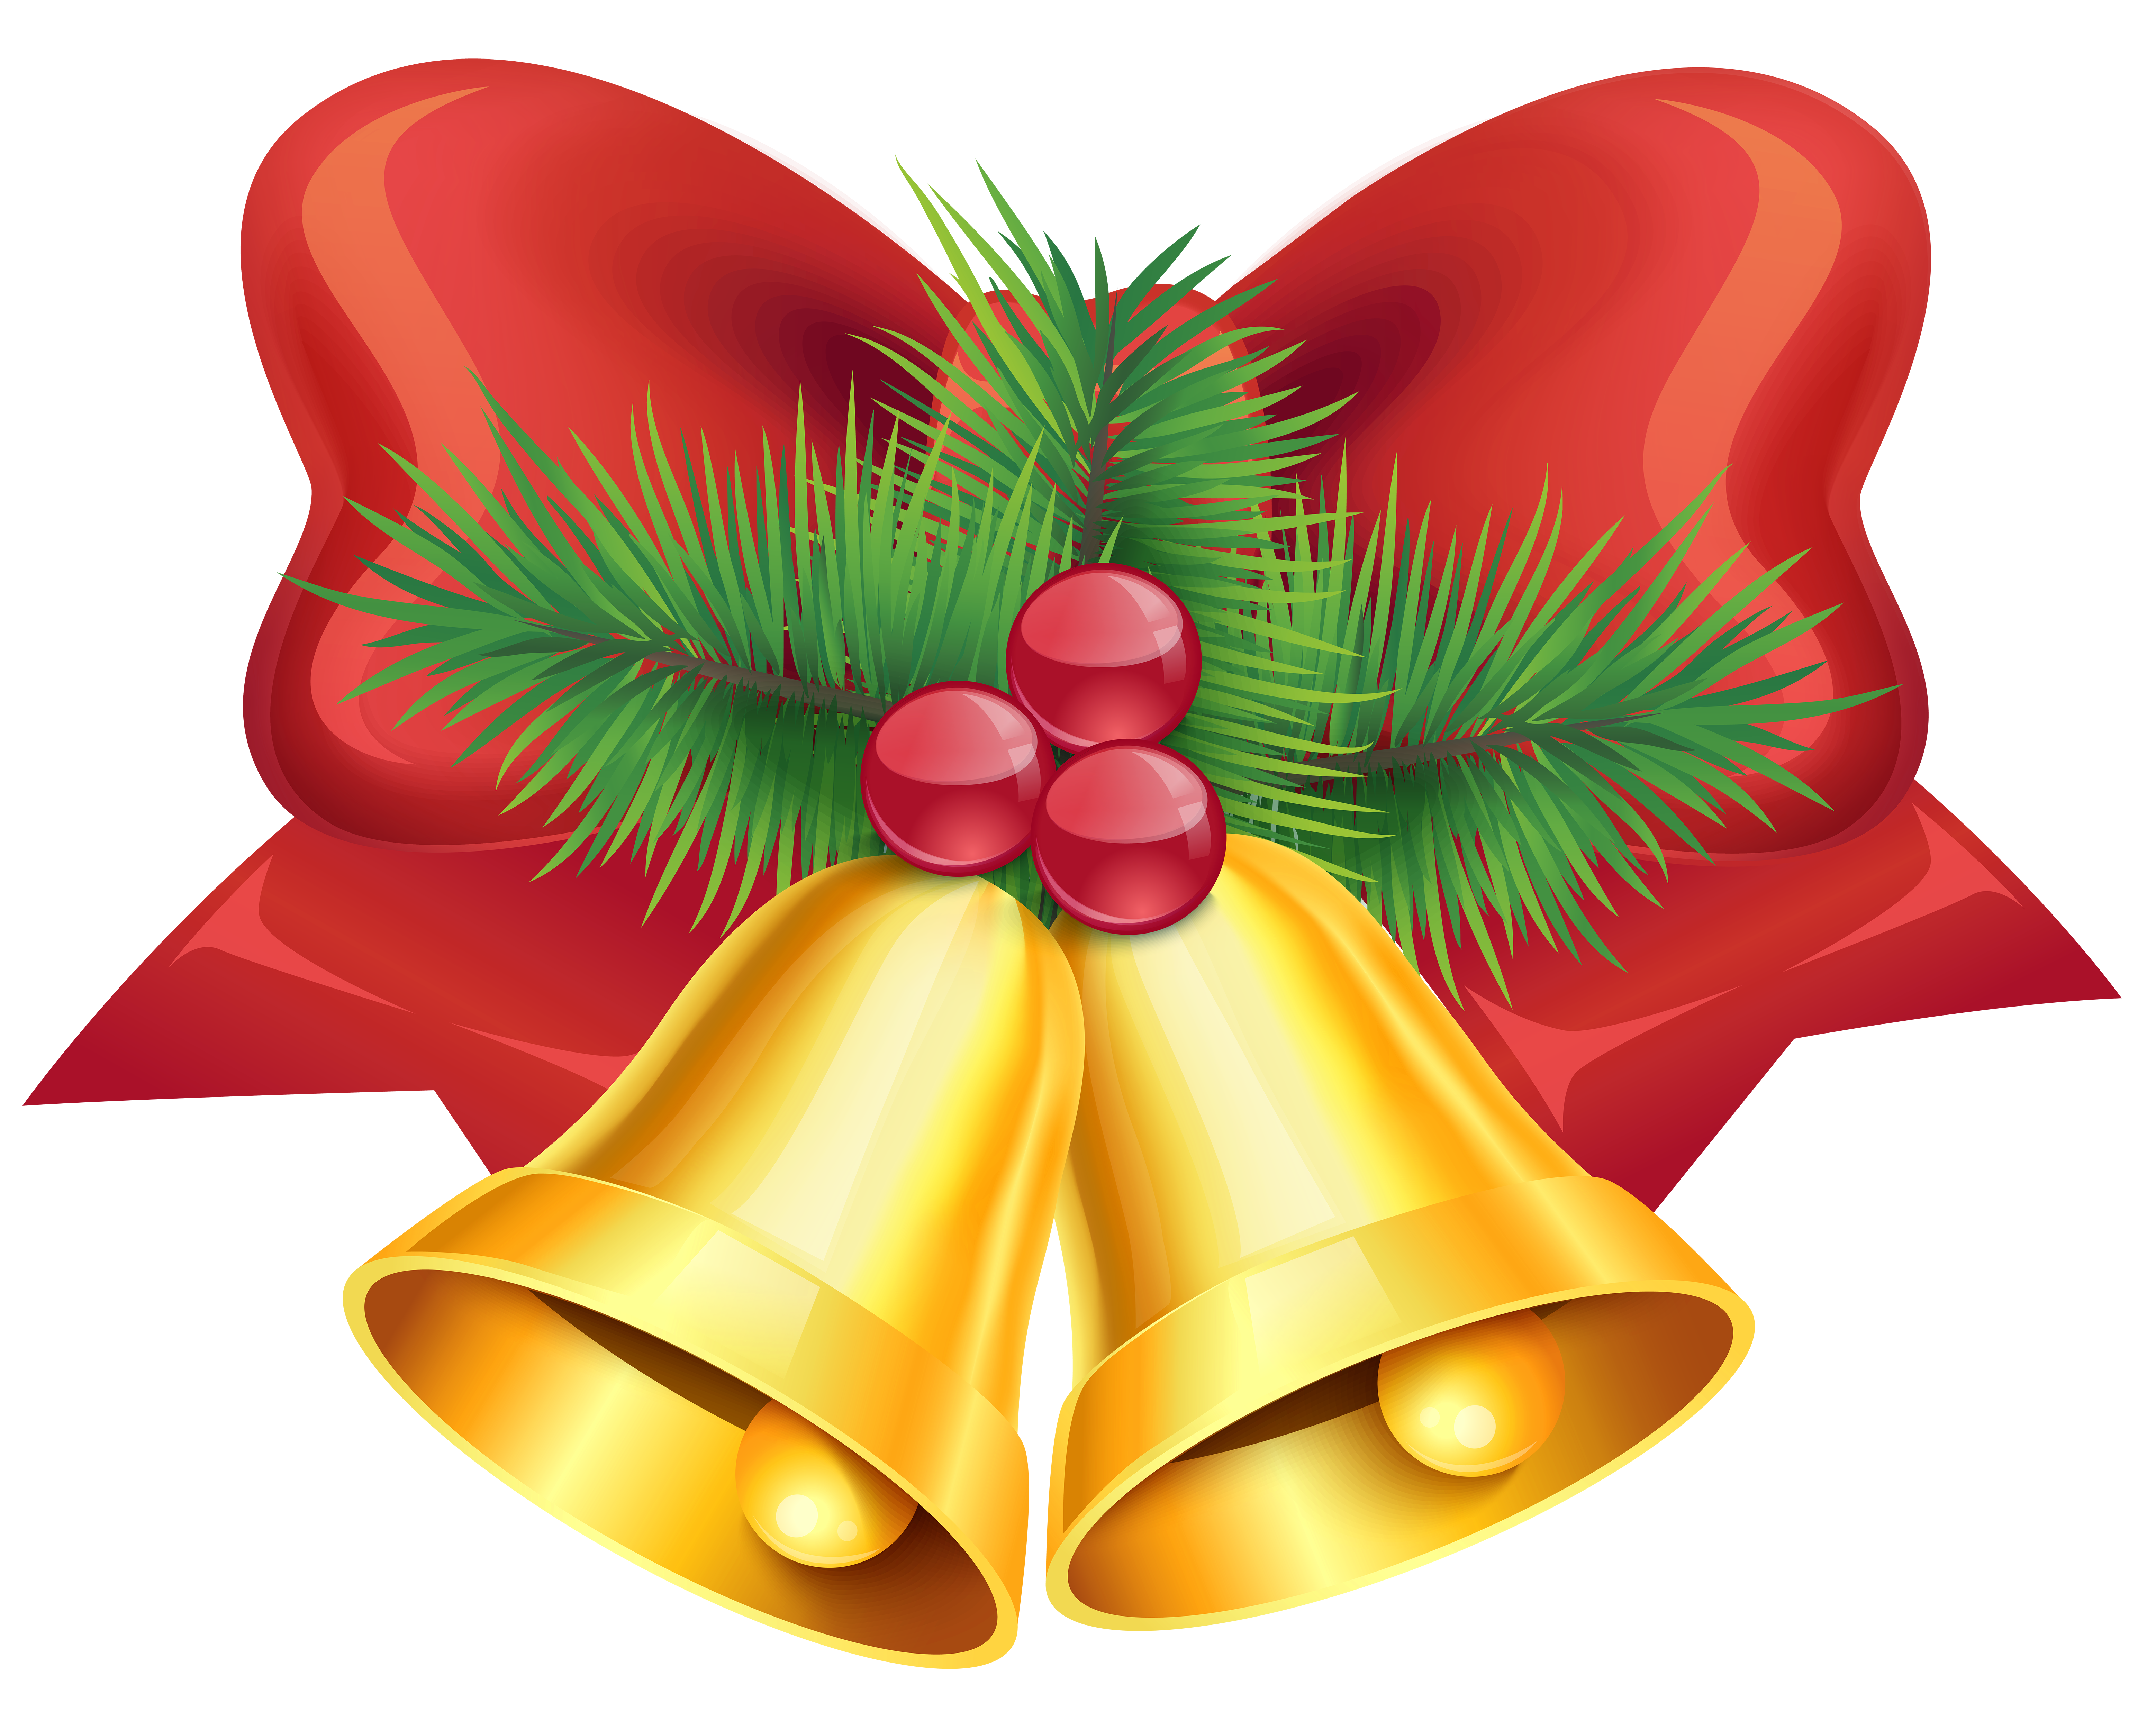 Christmas Bells with Bow PNG Clipart Image | Gallery Yopriceville -  High-Quality Images and Transparent PNG Free Clipart